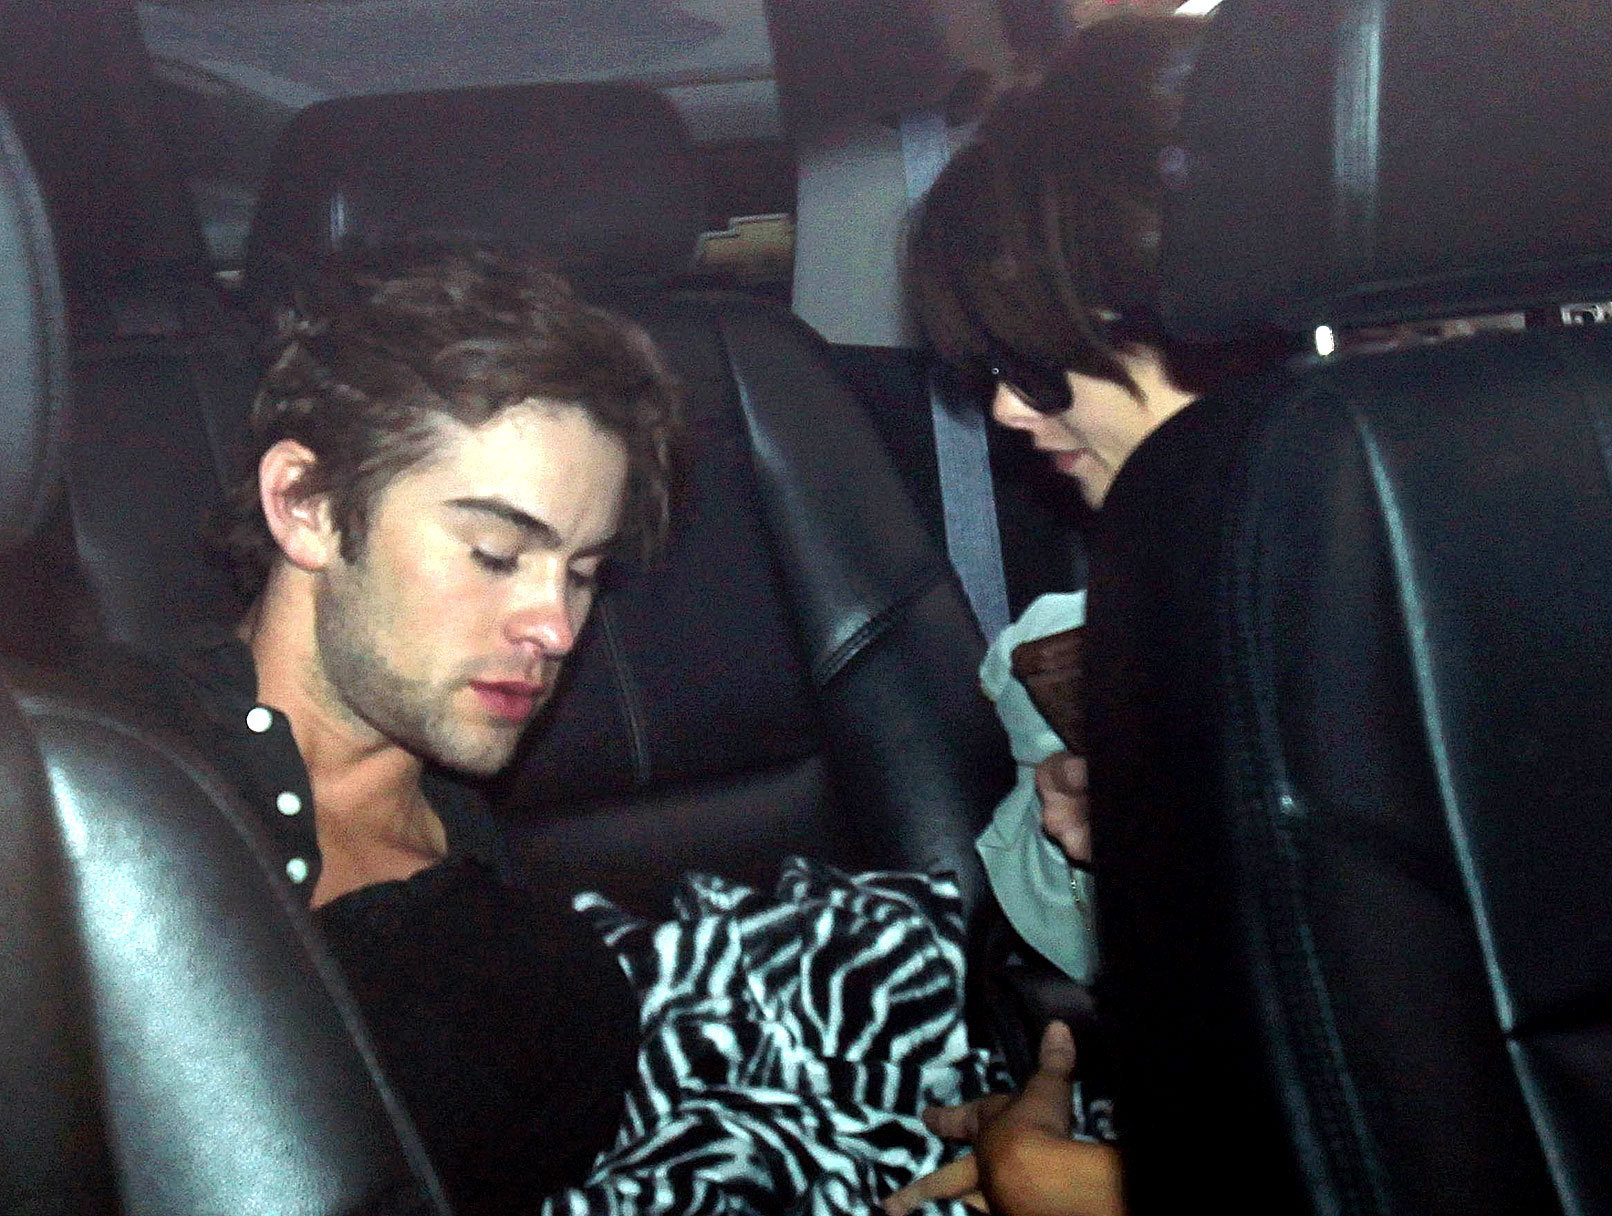 [Riley Grant]@alcoholdrugs&sex Ashley-Greene-Makes-Out-with-Chace-Crawford-twilight-series-7587125-1612-1216